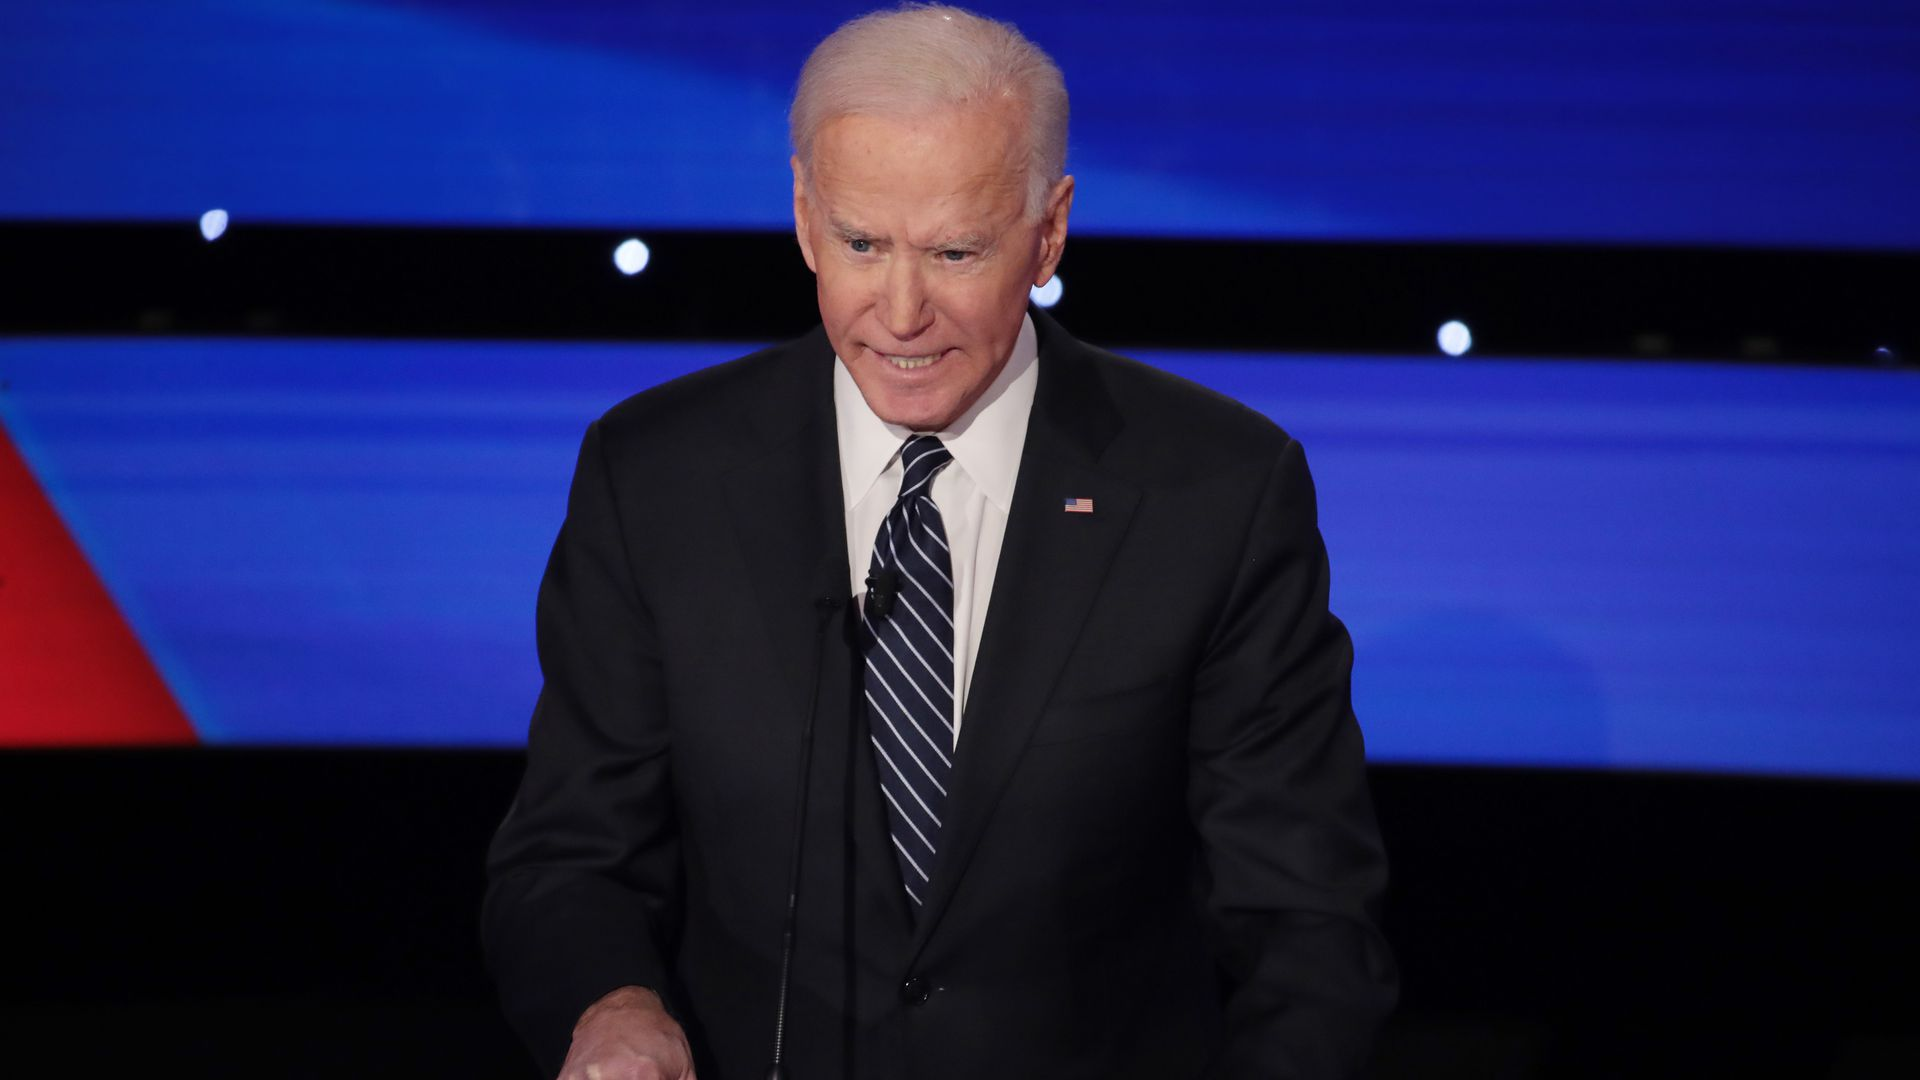 Biden wants to end Facebook's protection from liability for users' content